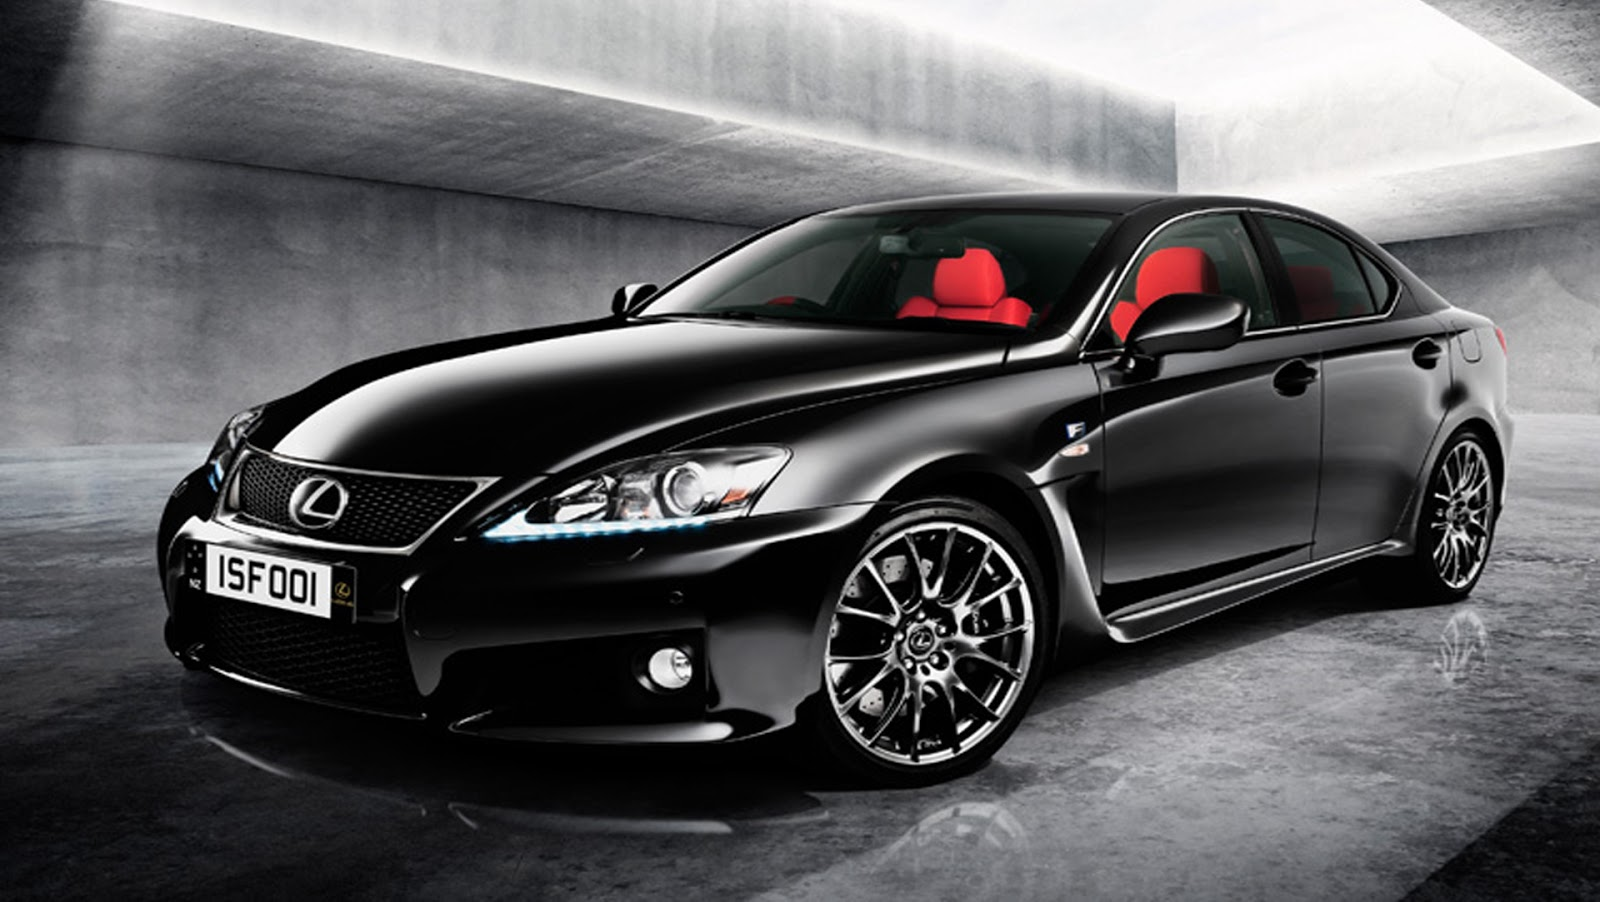 Lexus Dealers In Nj >> Do People Really Buy Cars as Christmas Gifts? | Our view ...